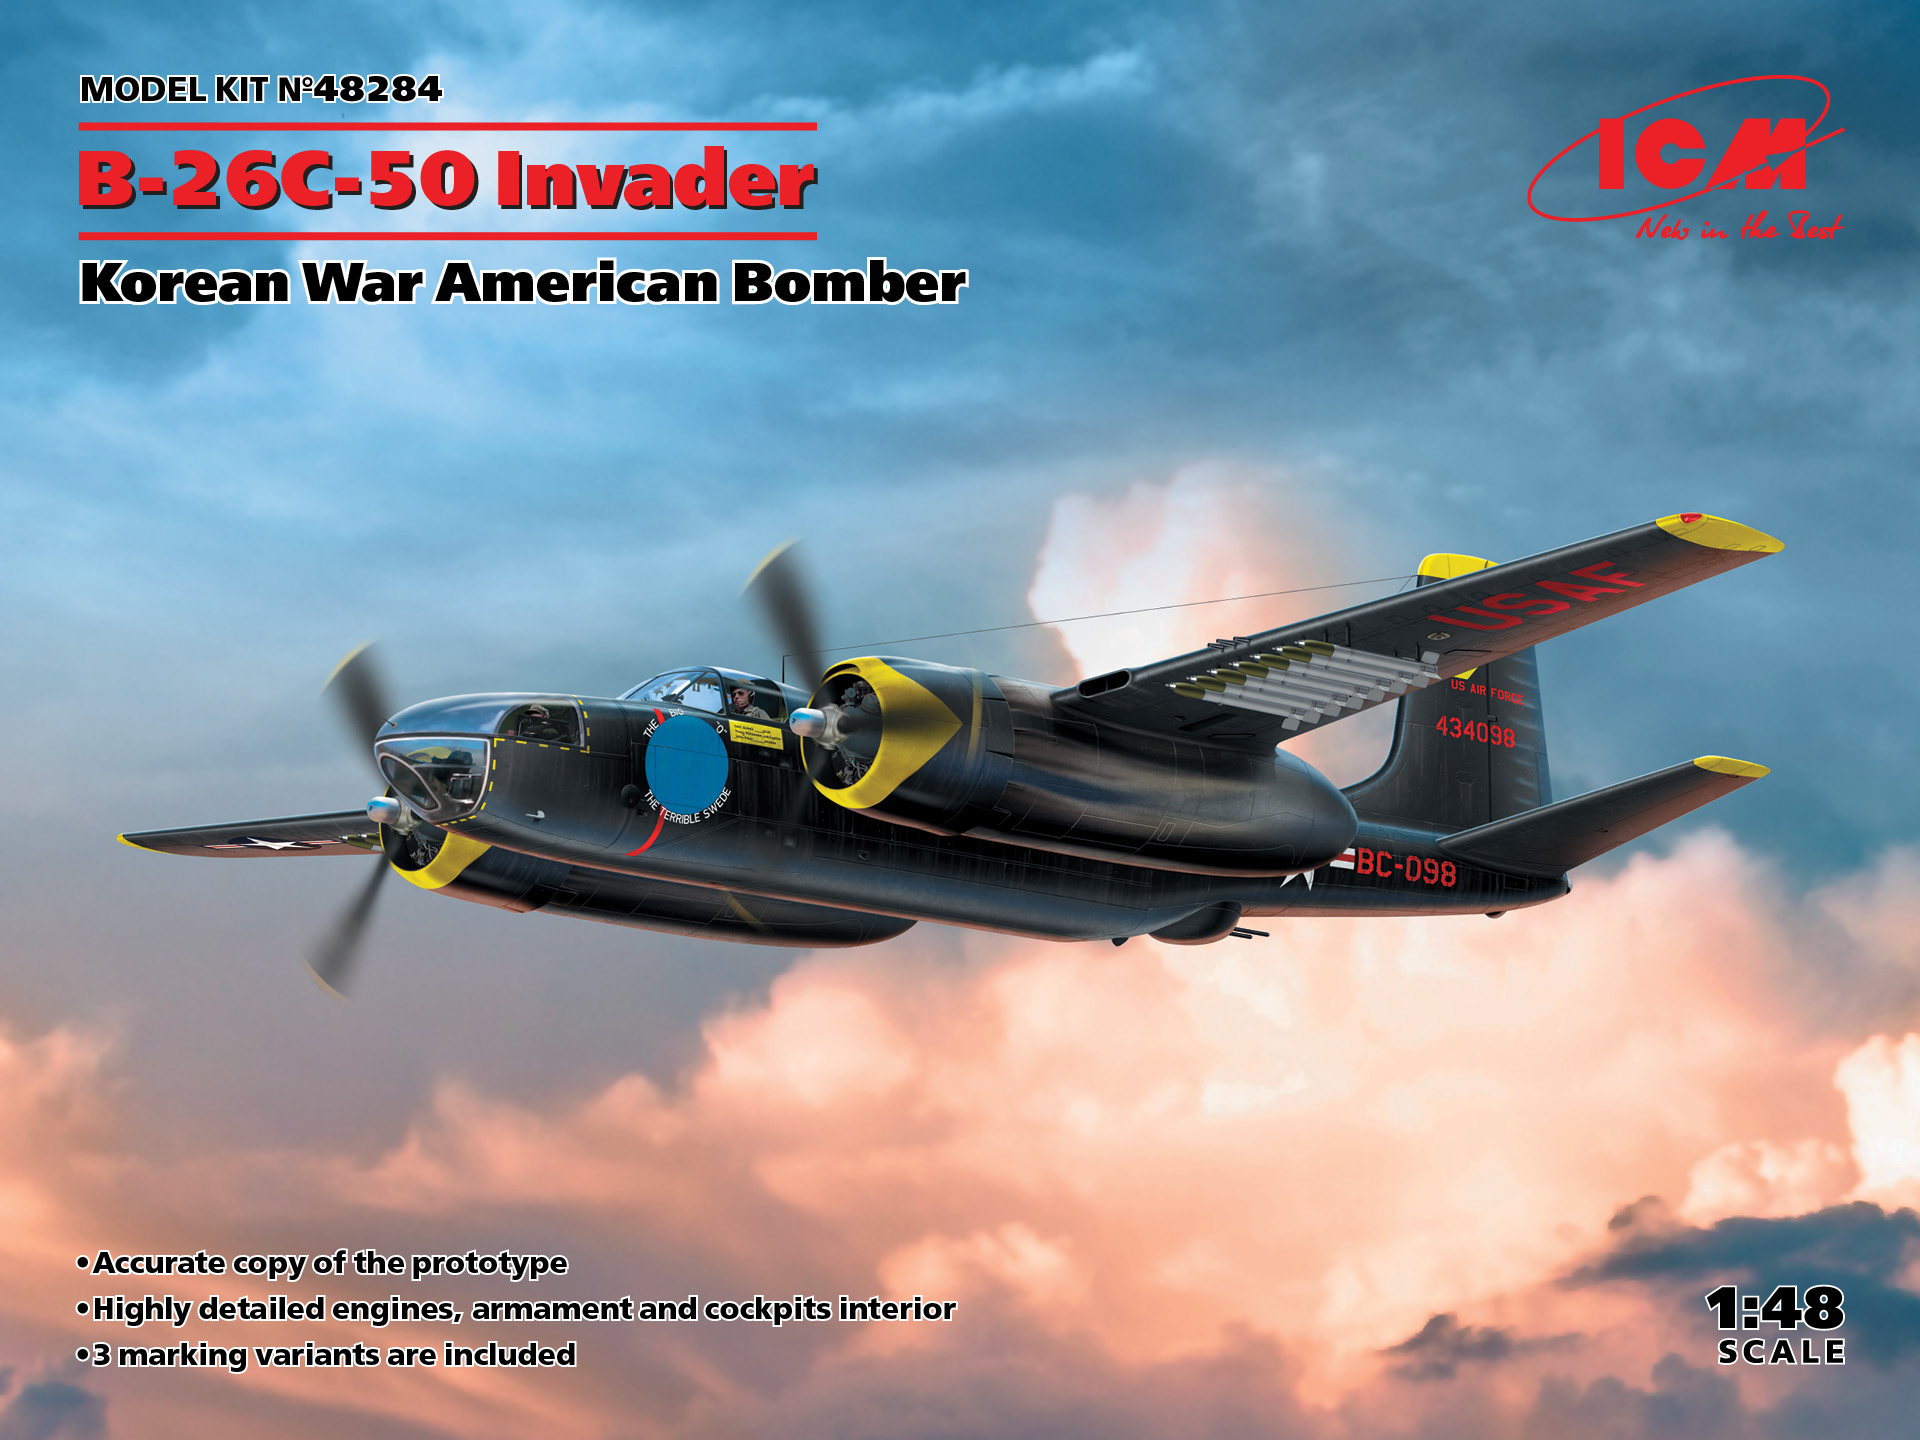 ICM B-26C-50 Invader, Korean War American Bomber 1/48 Scale